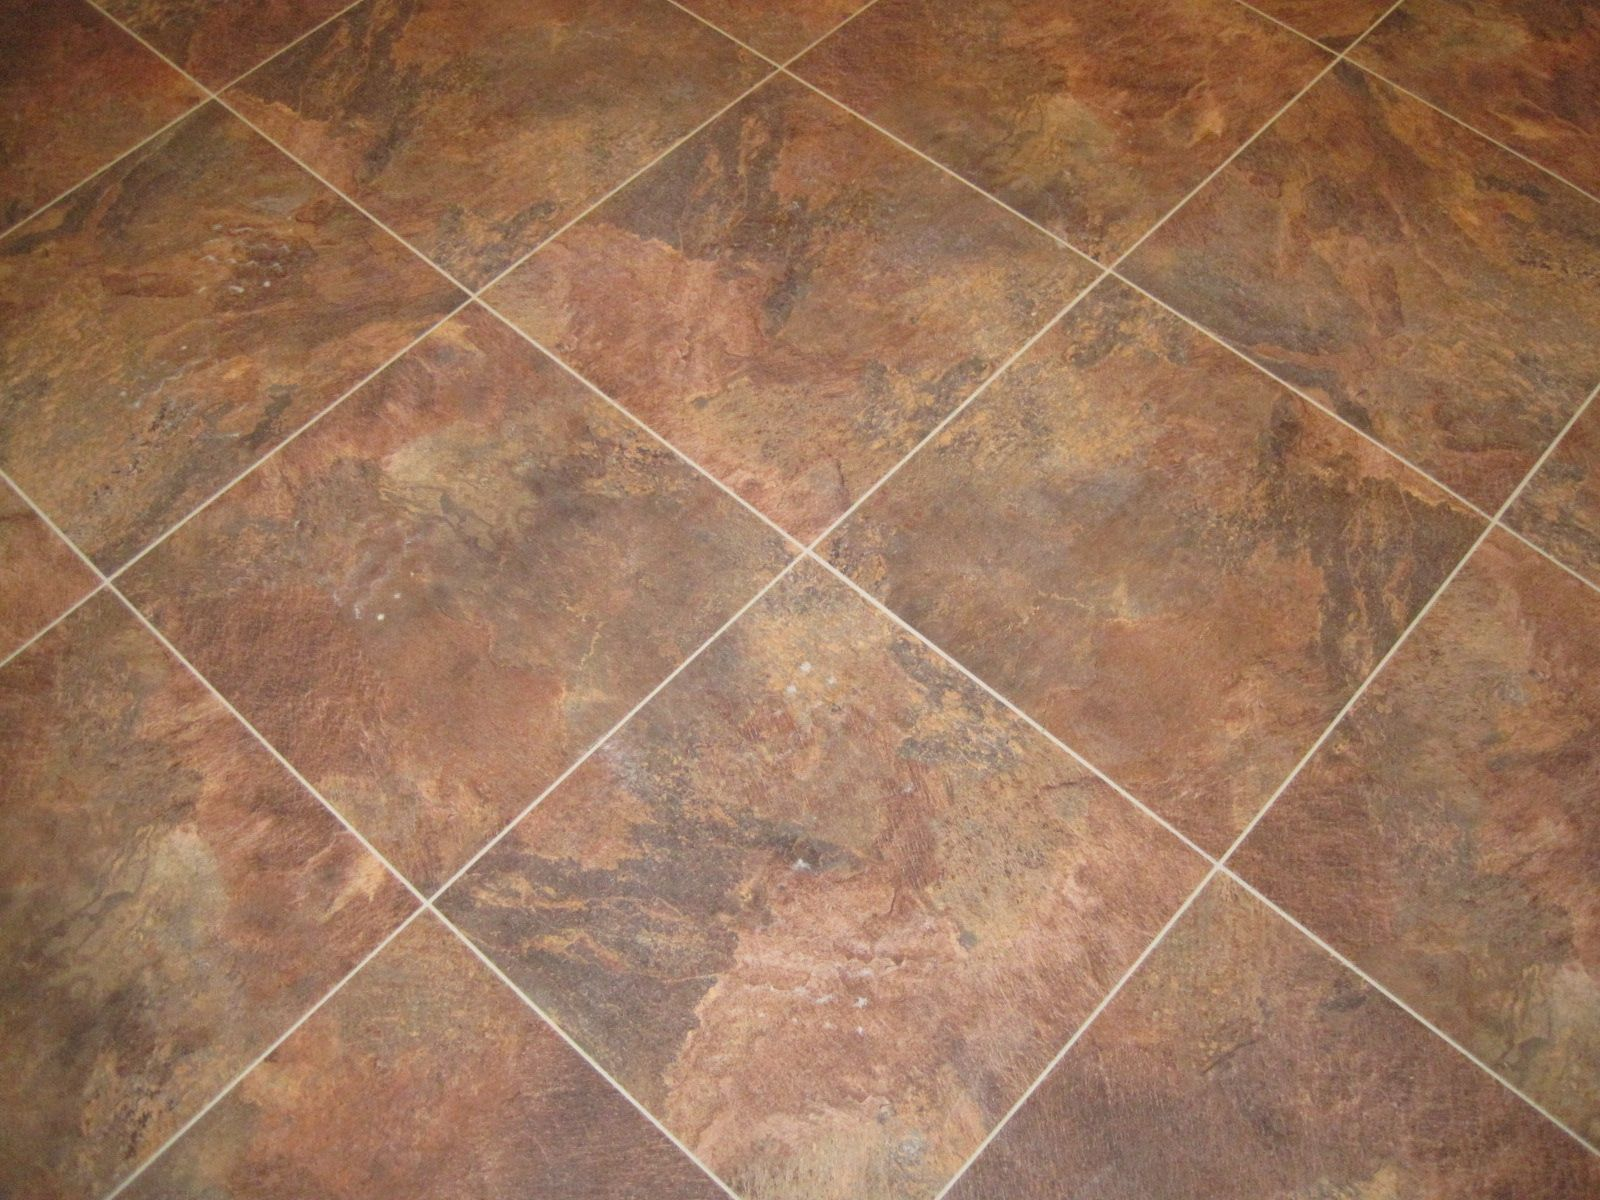 Kitchen Floor Tile Ideas flooring plans | kitchen floors, vinyl tiles and tile flooring